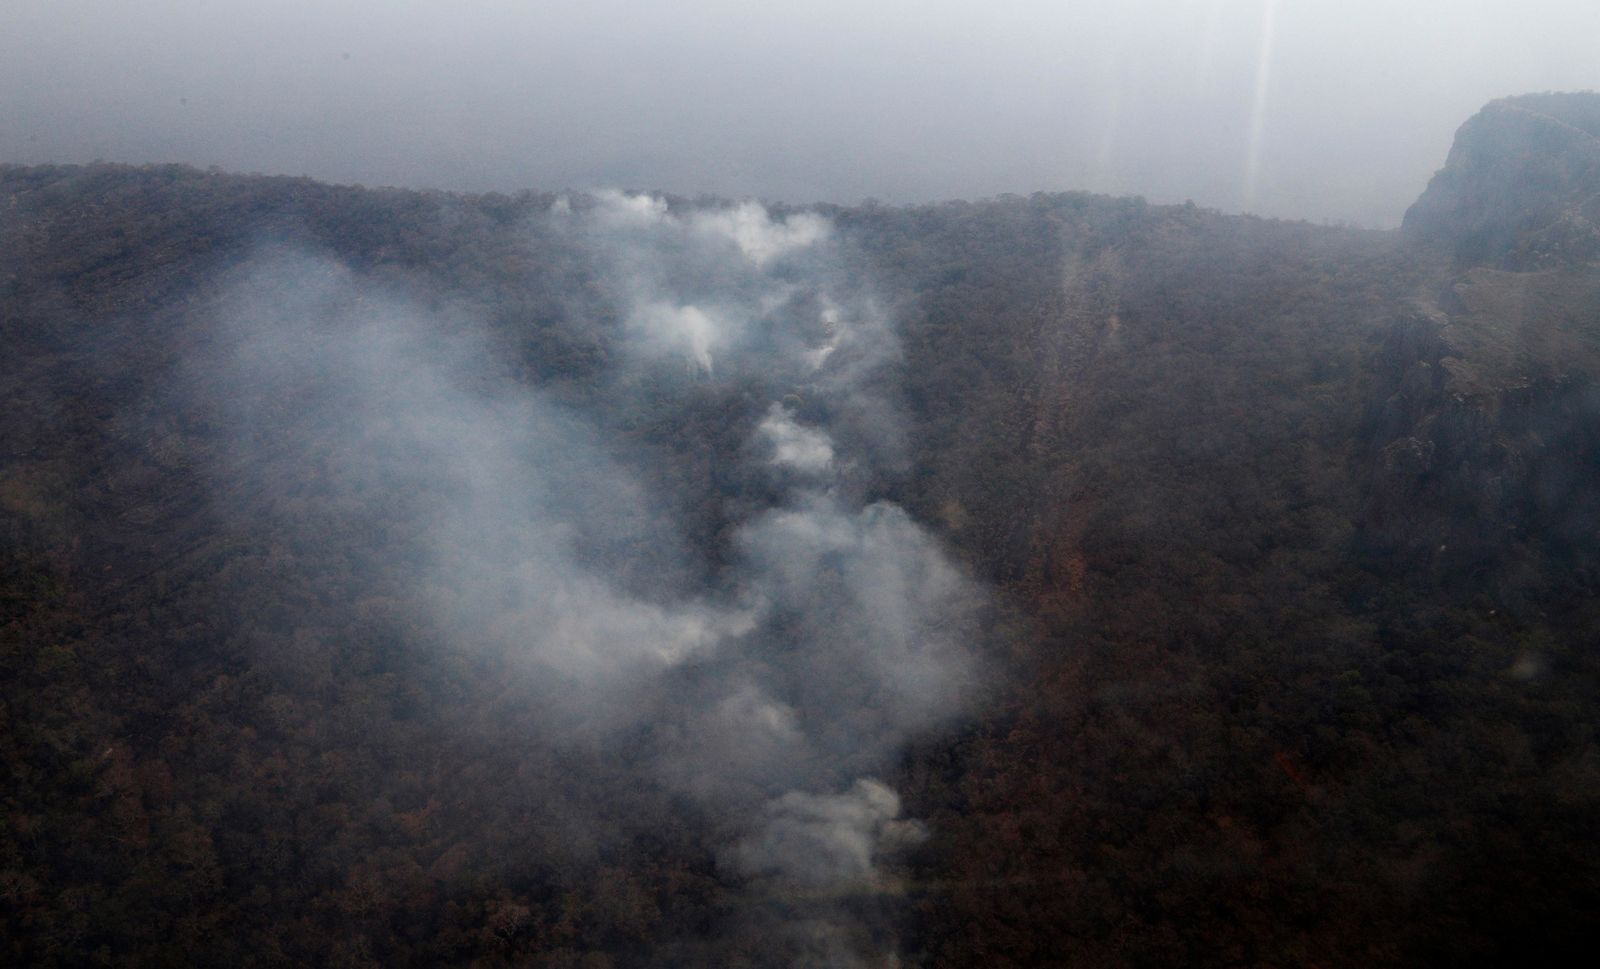 Wildfires burn in the Chquitania Forest near Robore, Bolivia, Sunday, Aug. 25, 2019. Bolivian President Evo Morales said Saturday he would welcome aid in fighting his country's wildfires, which have scorched more than 2,900 square miles (744,000 hectares) of land in the Chiquitanía region over the past two weeks. (AP Photo/Juan Karita)